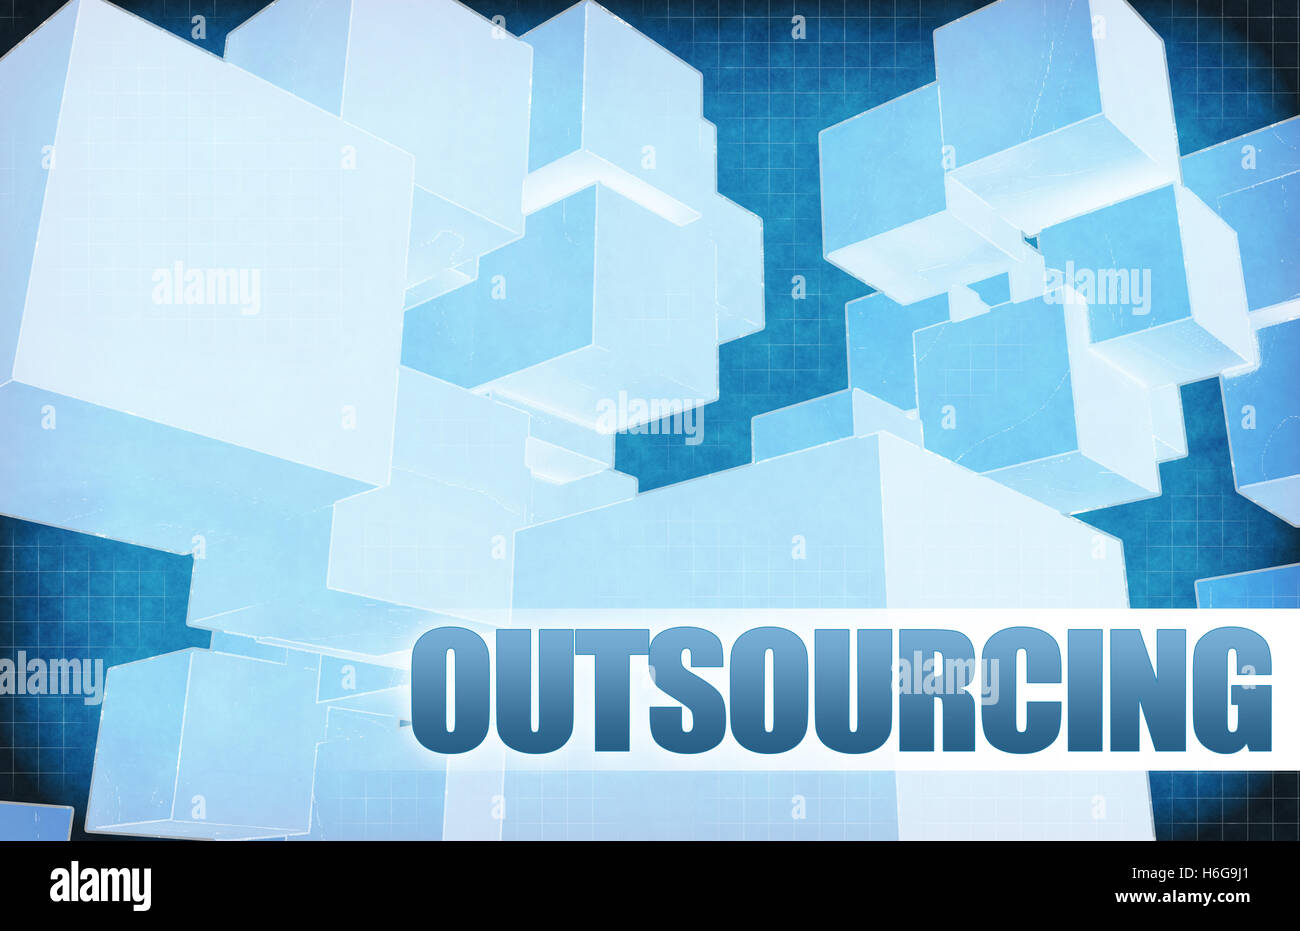 Outsourcing on Futuristic Abstract for Presentation Slide - Stock Image